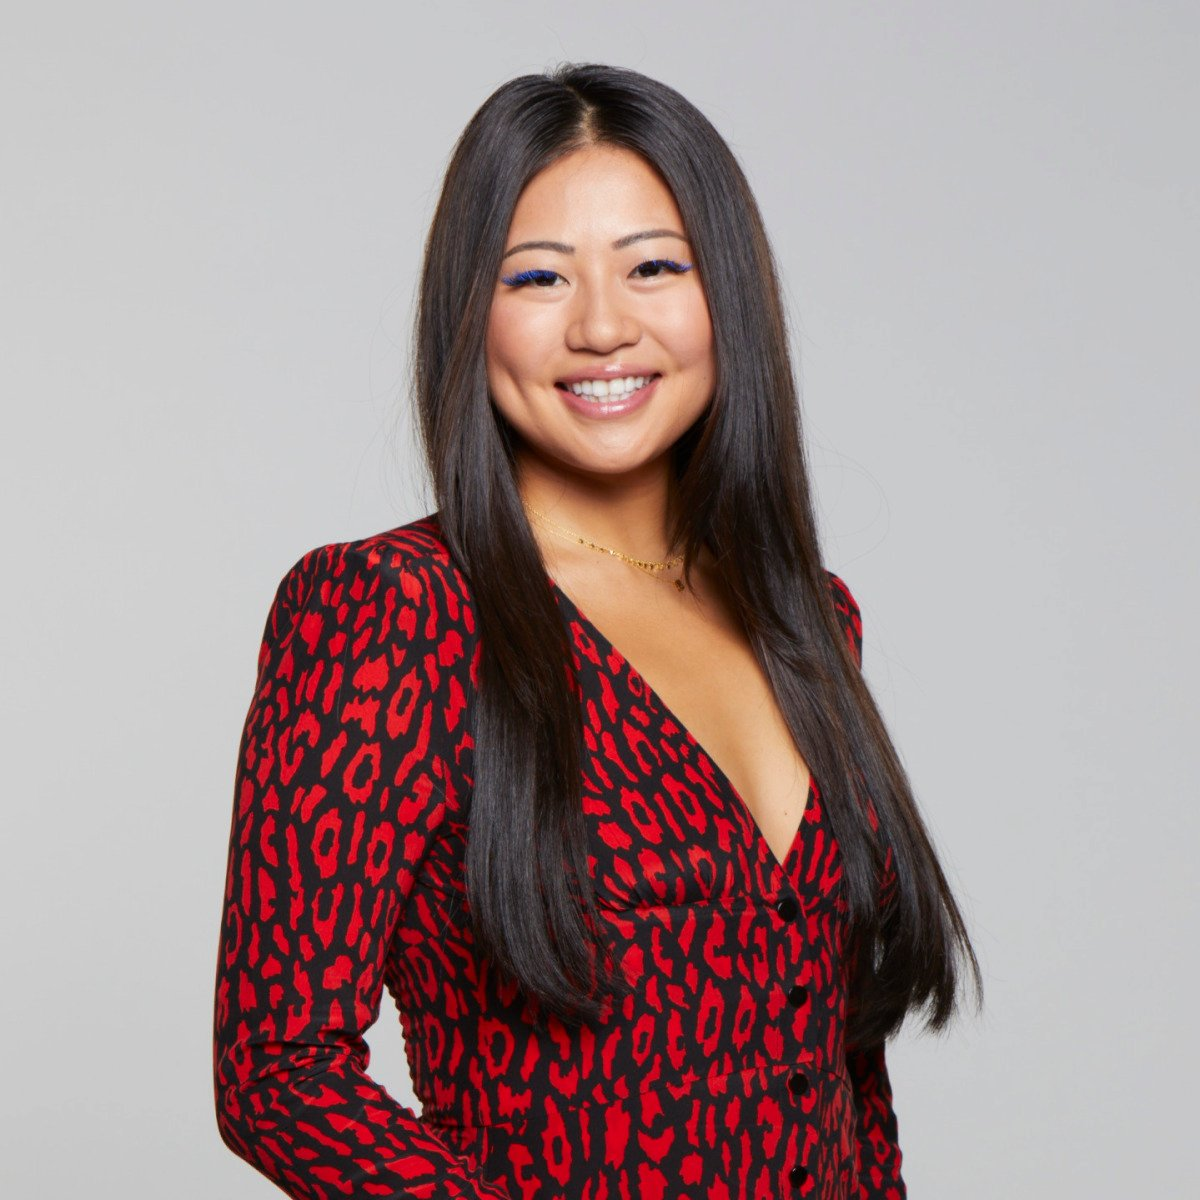 Meet #BB21 Houseguest Isabella Wang Age: 22 Hometown: Mount Olive, New Jersey Current city: Los Angeles Occupation: Public Health Analyst Favorite Houseguest: Isabella Wang